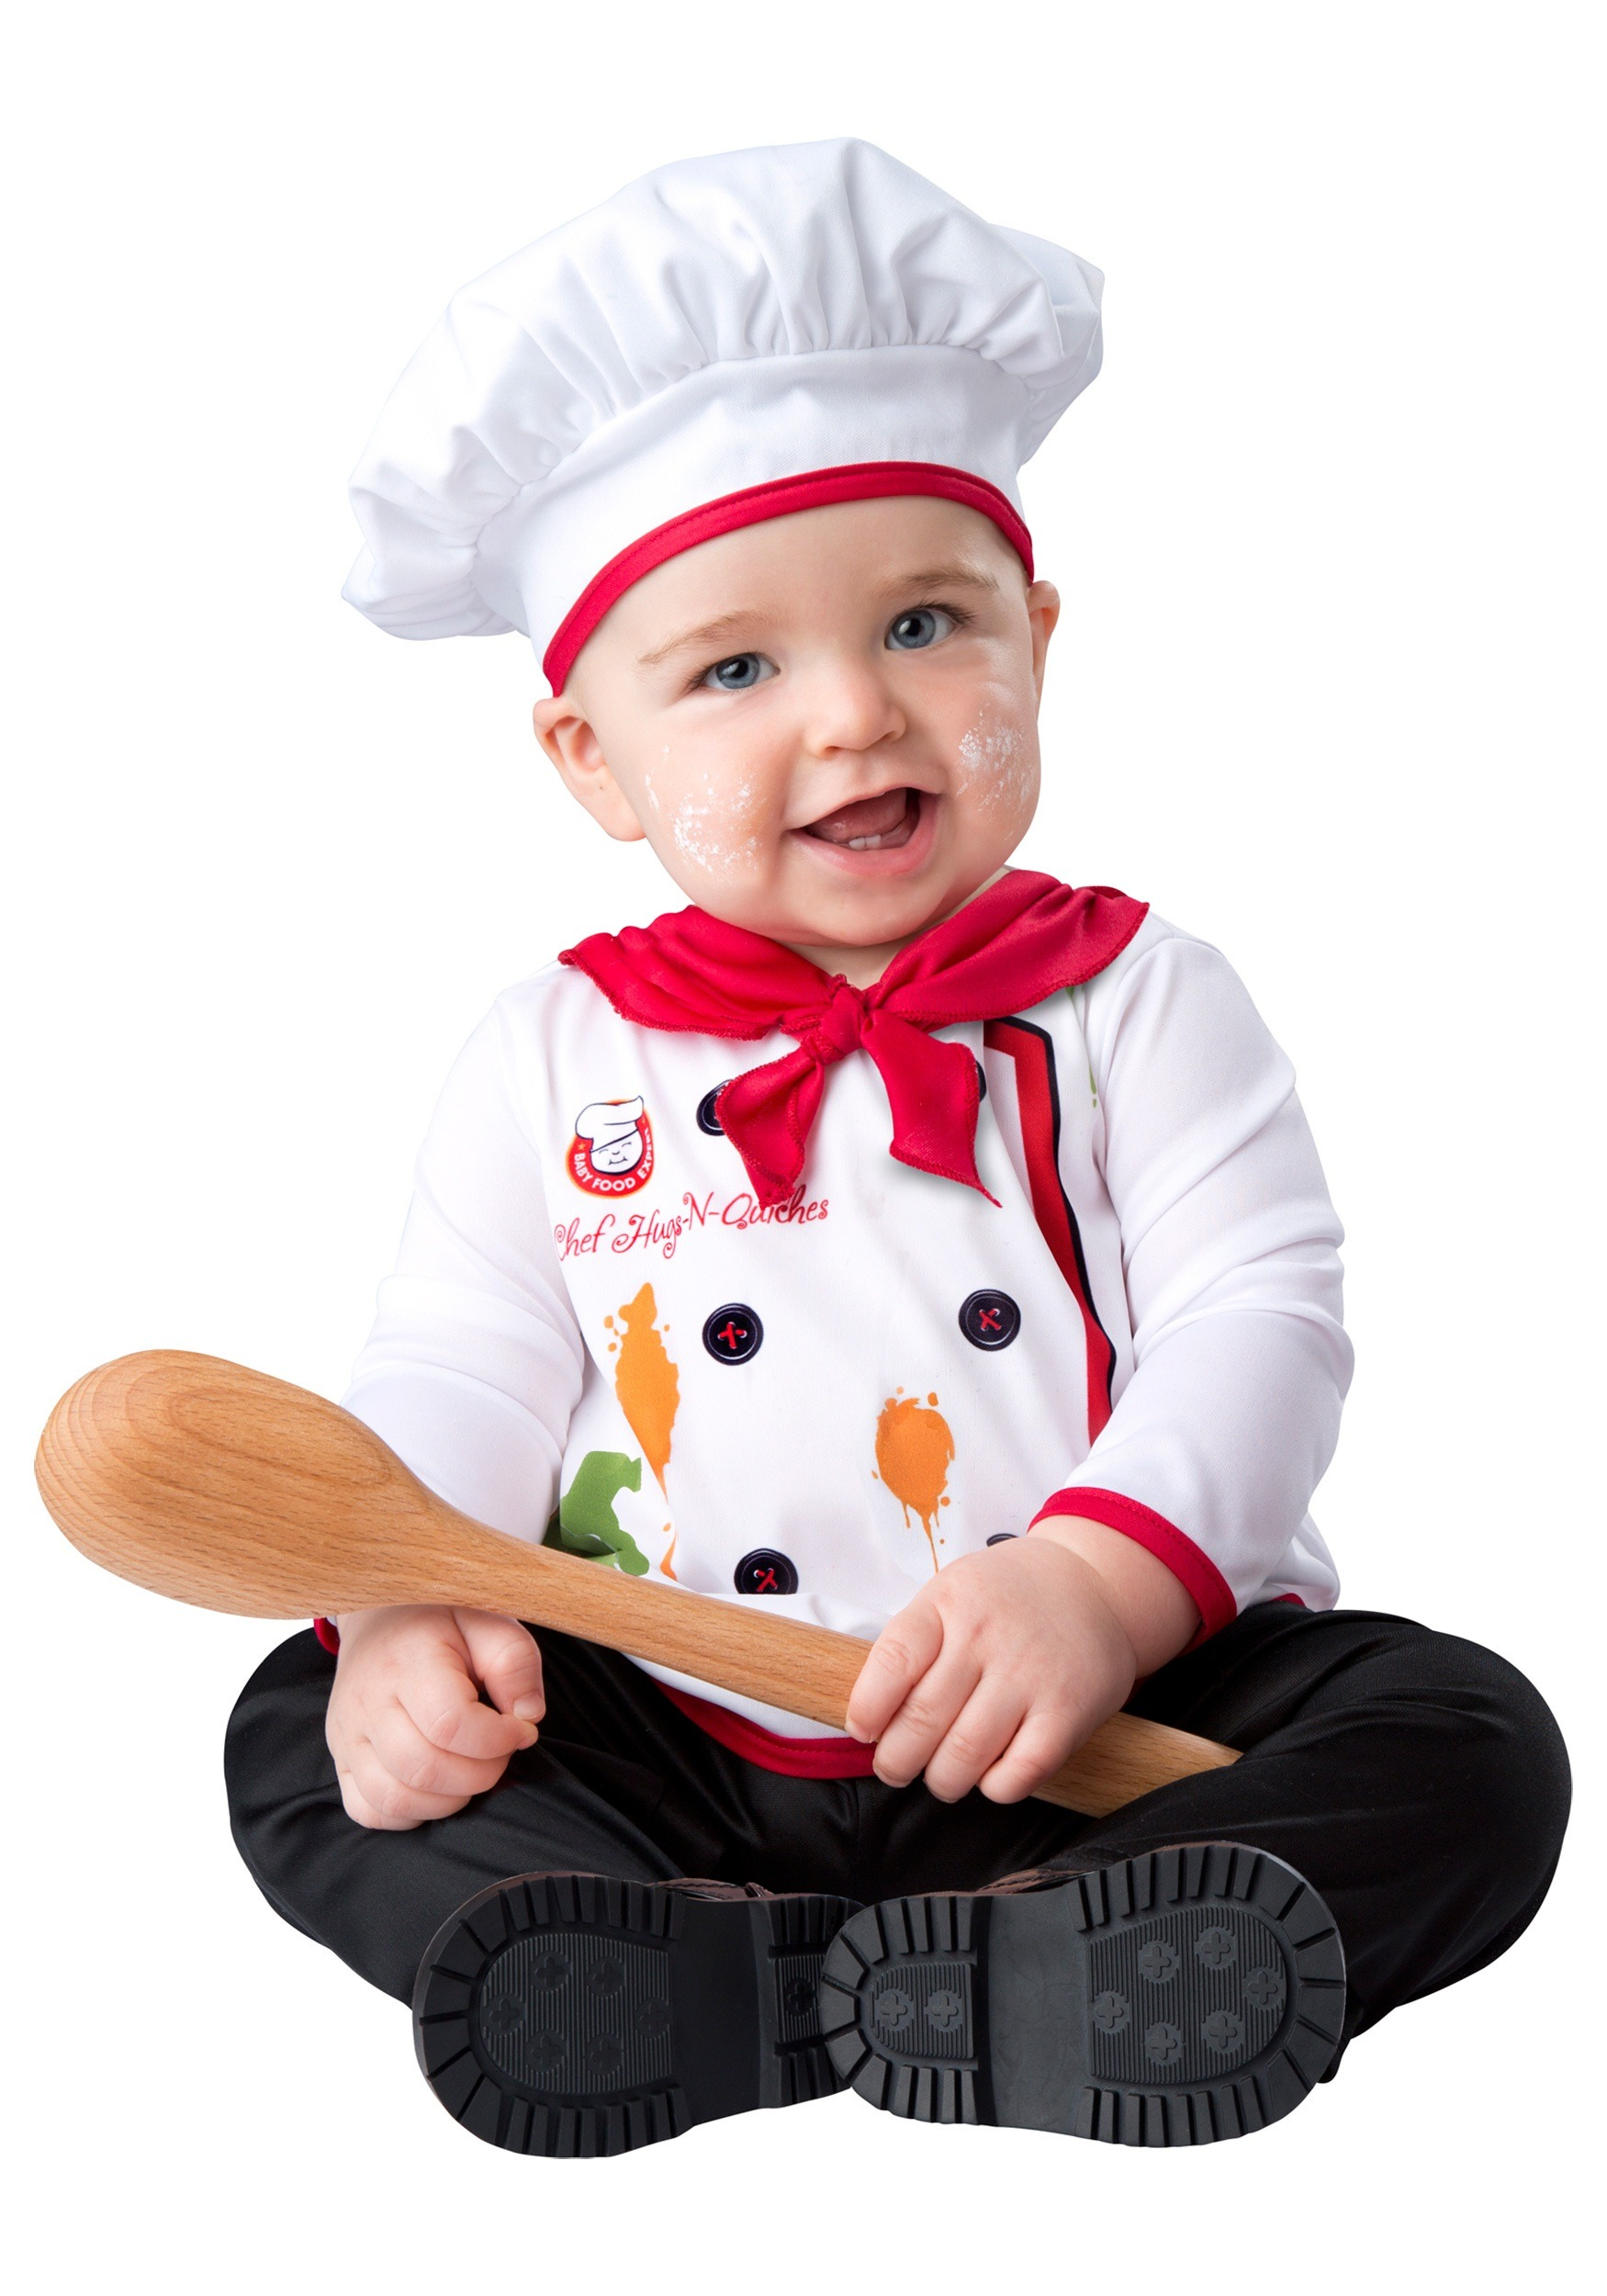 infant hugs and quiches chef costume